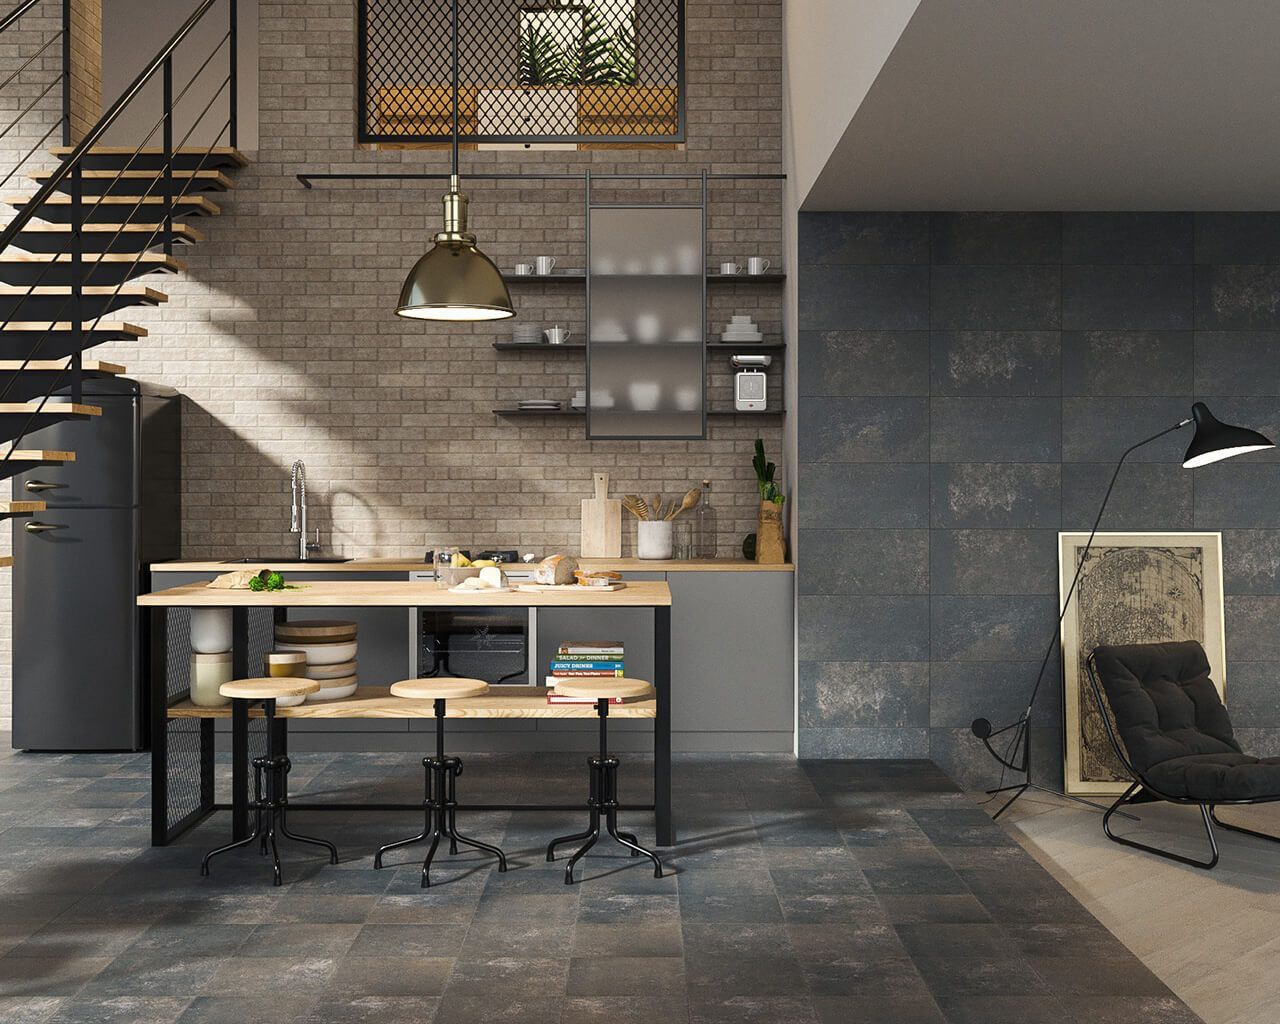 Living Room With A Kitchenette In The Industrial Style